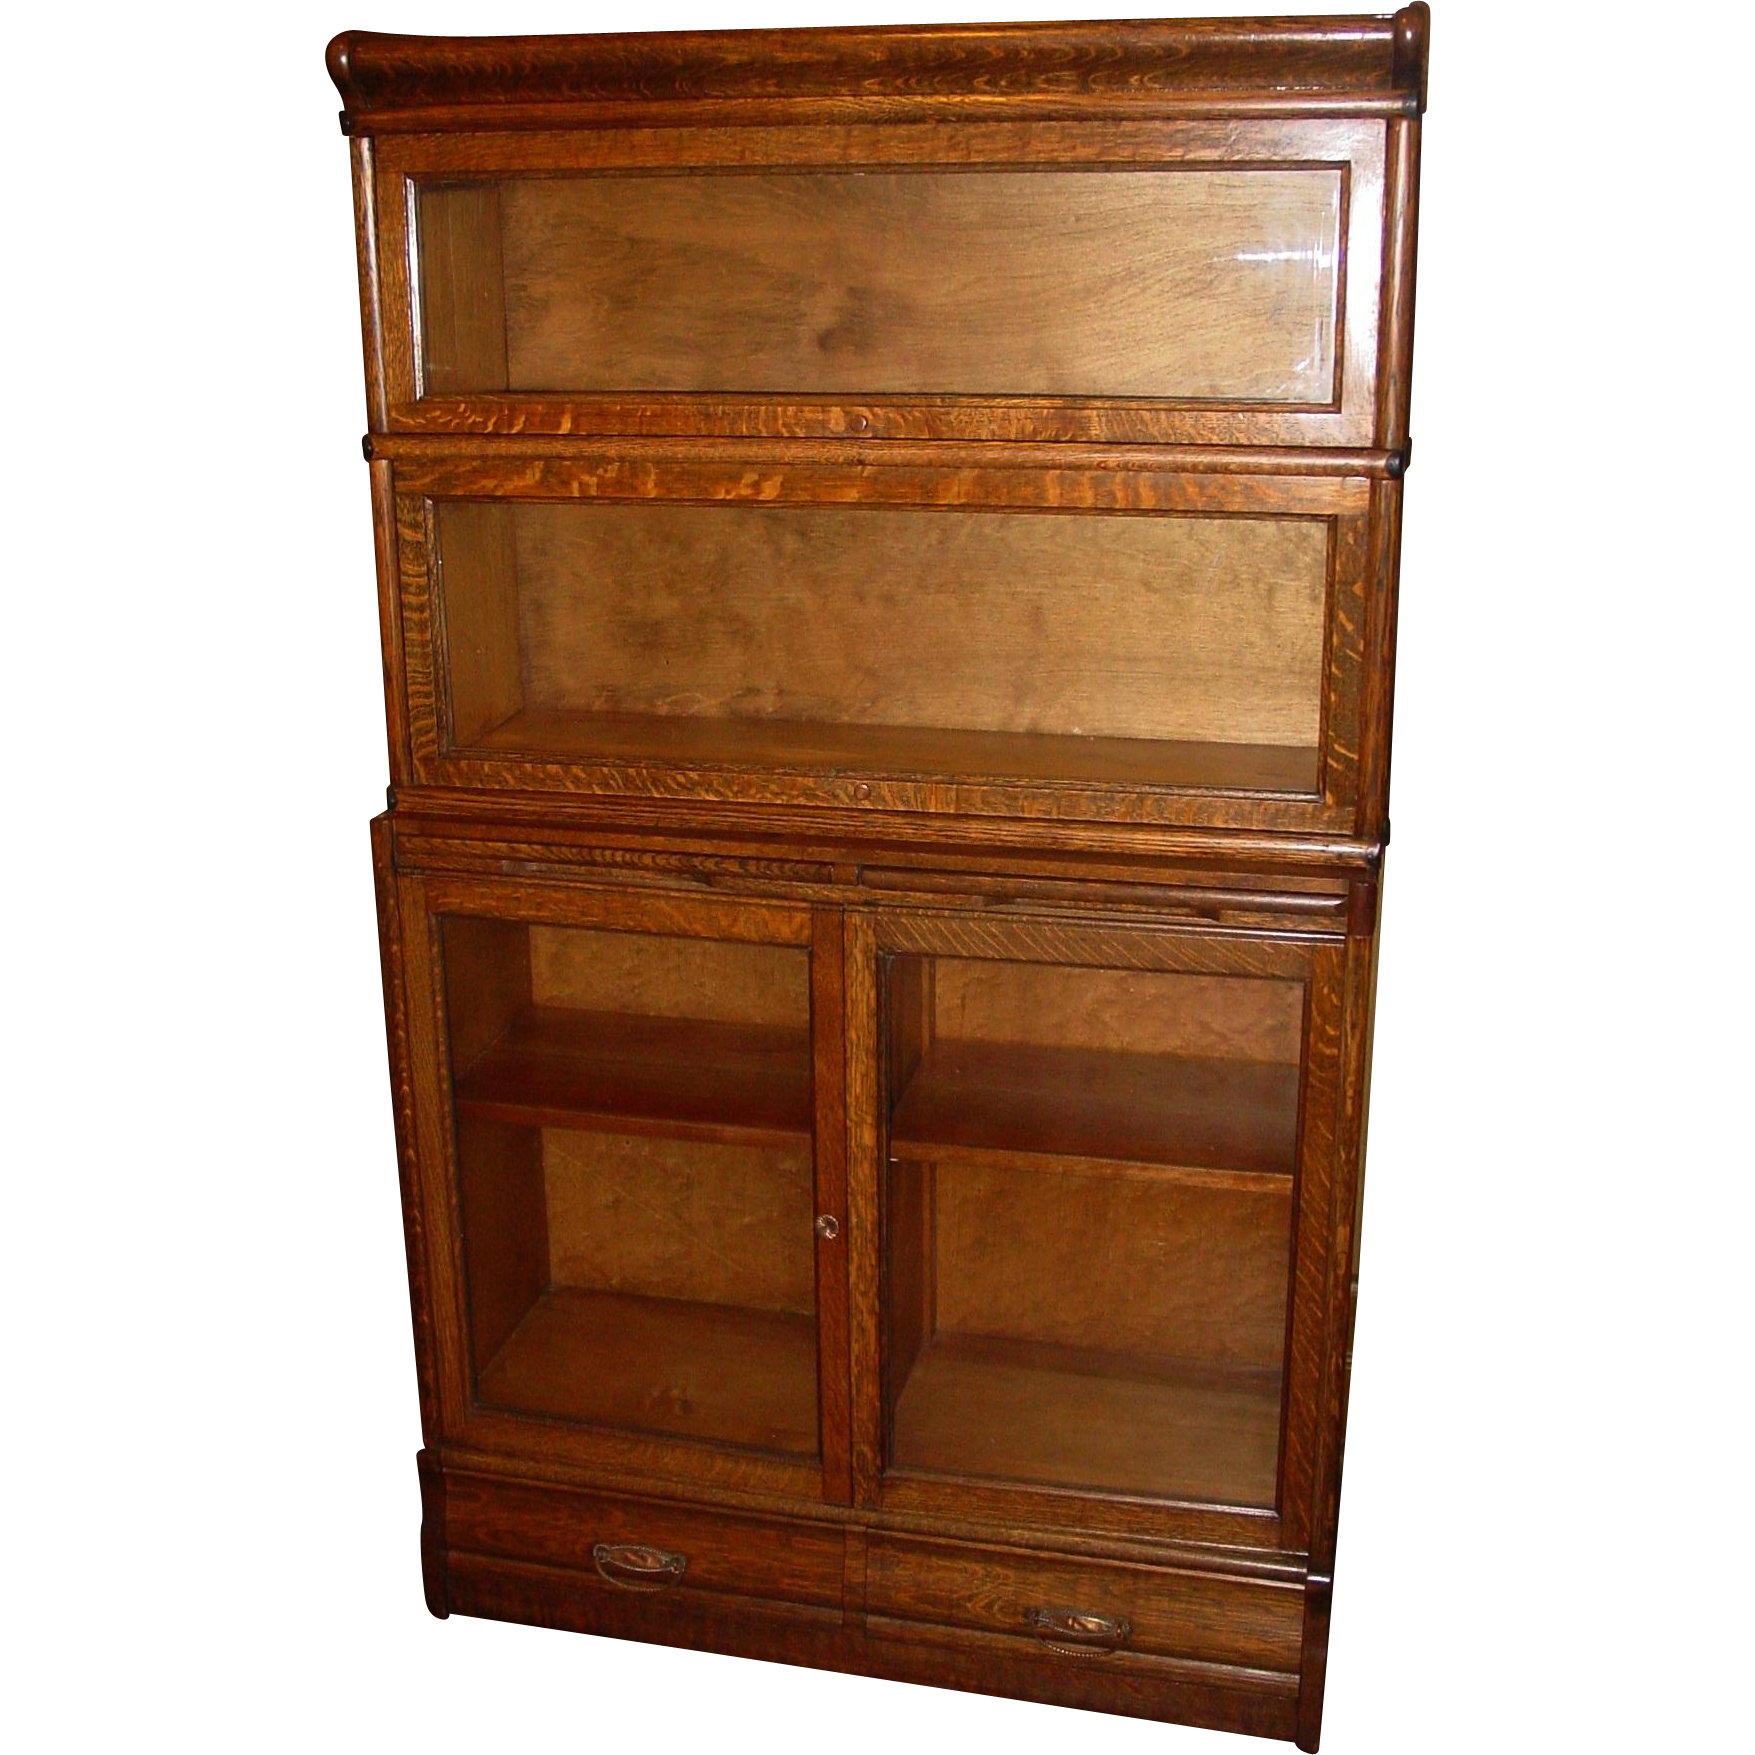 Unusual quartered oak barrister style bookcase-2 style doors w pullout and dwrs